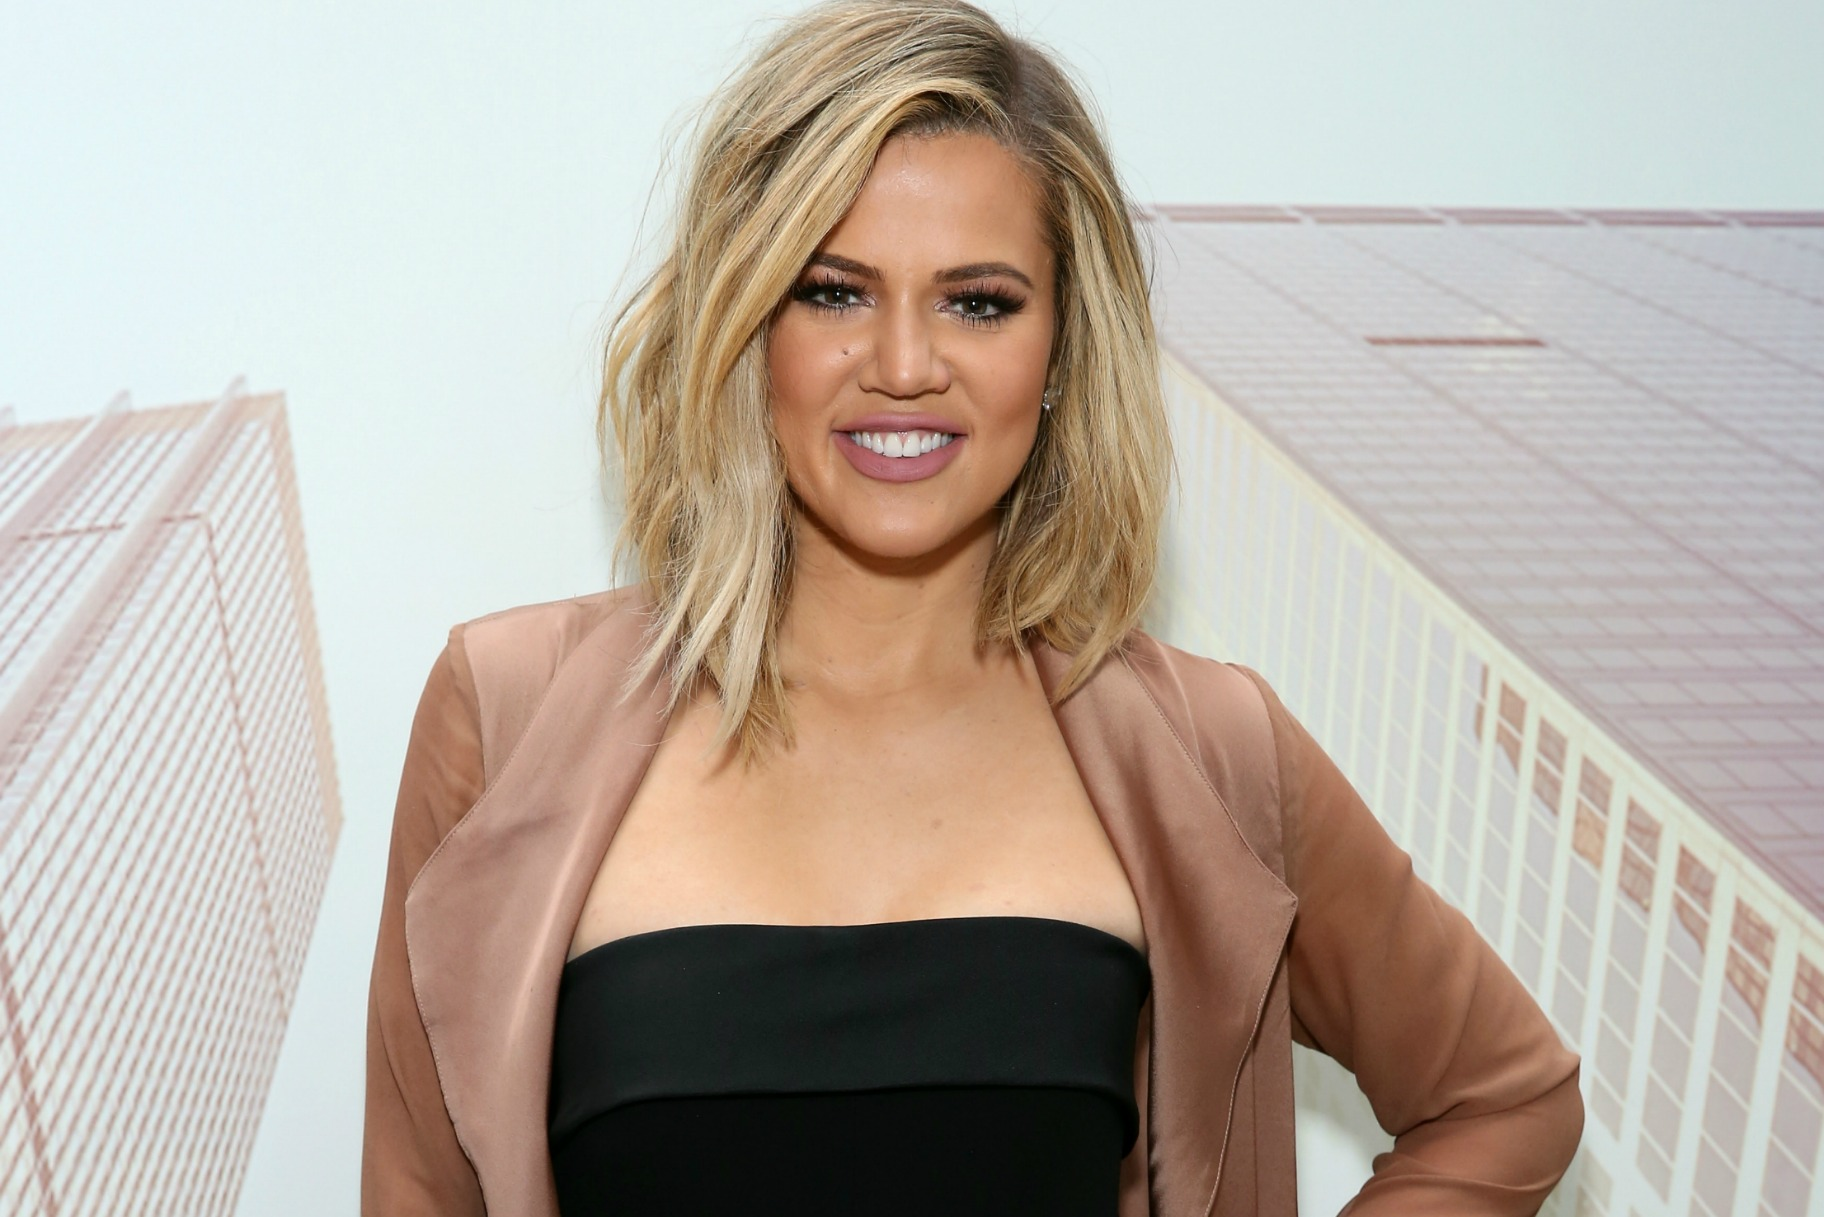 Khloe Kardashian Finally Shows Off Baby Bump